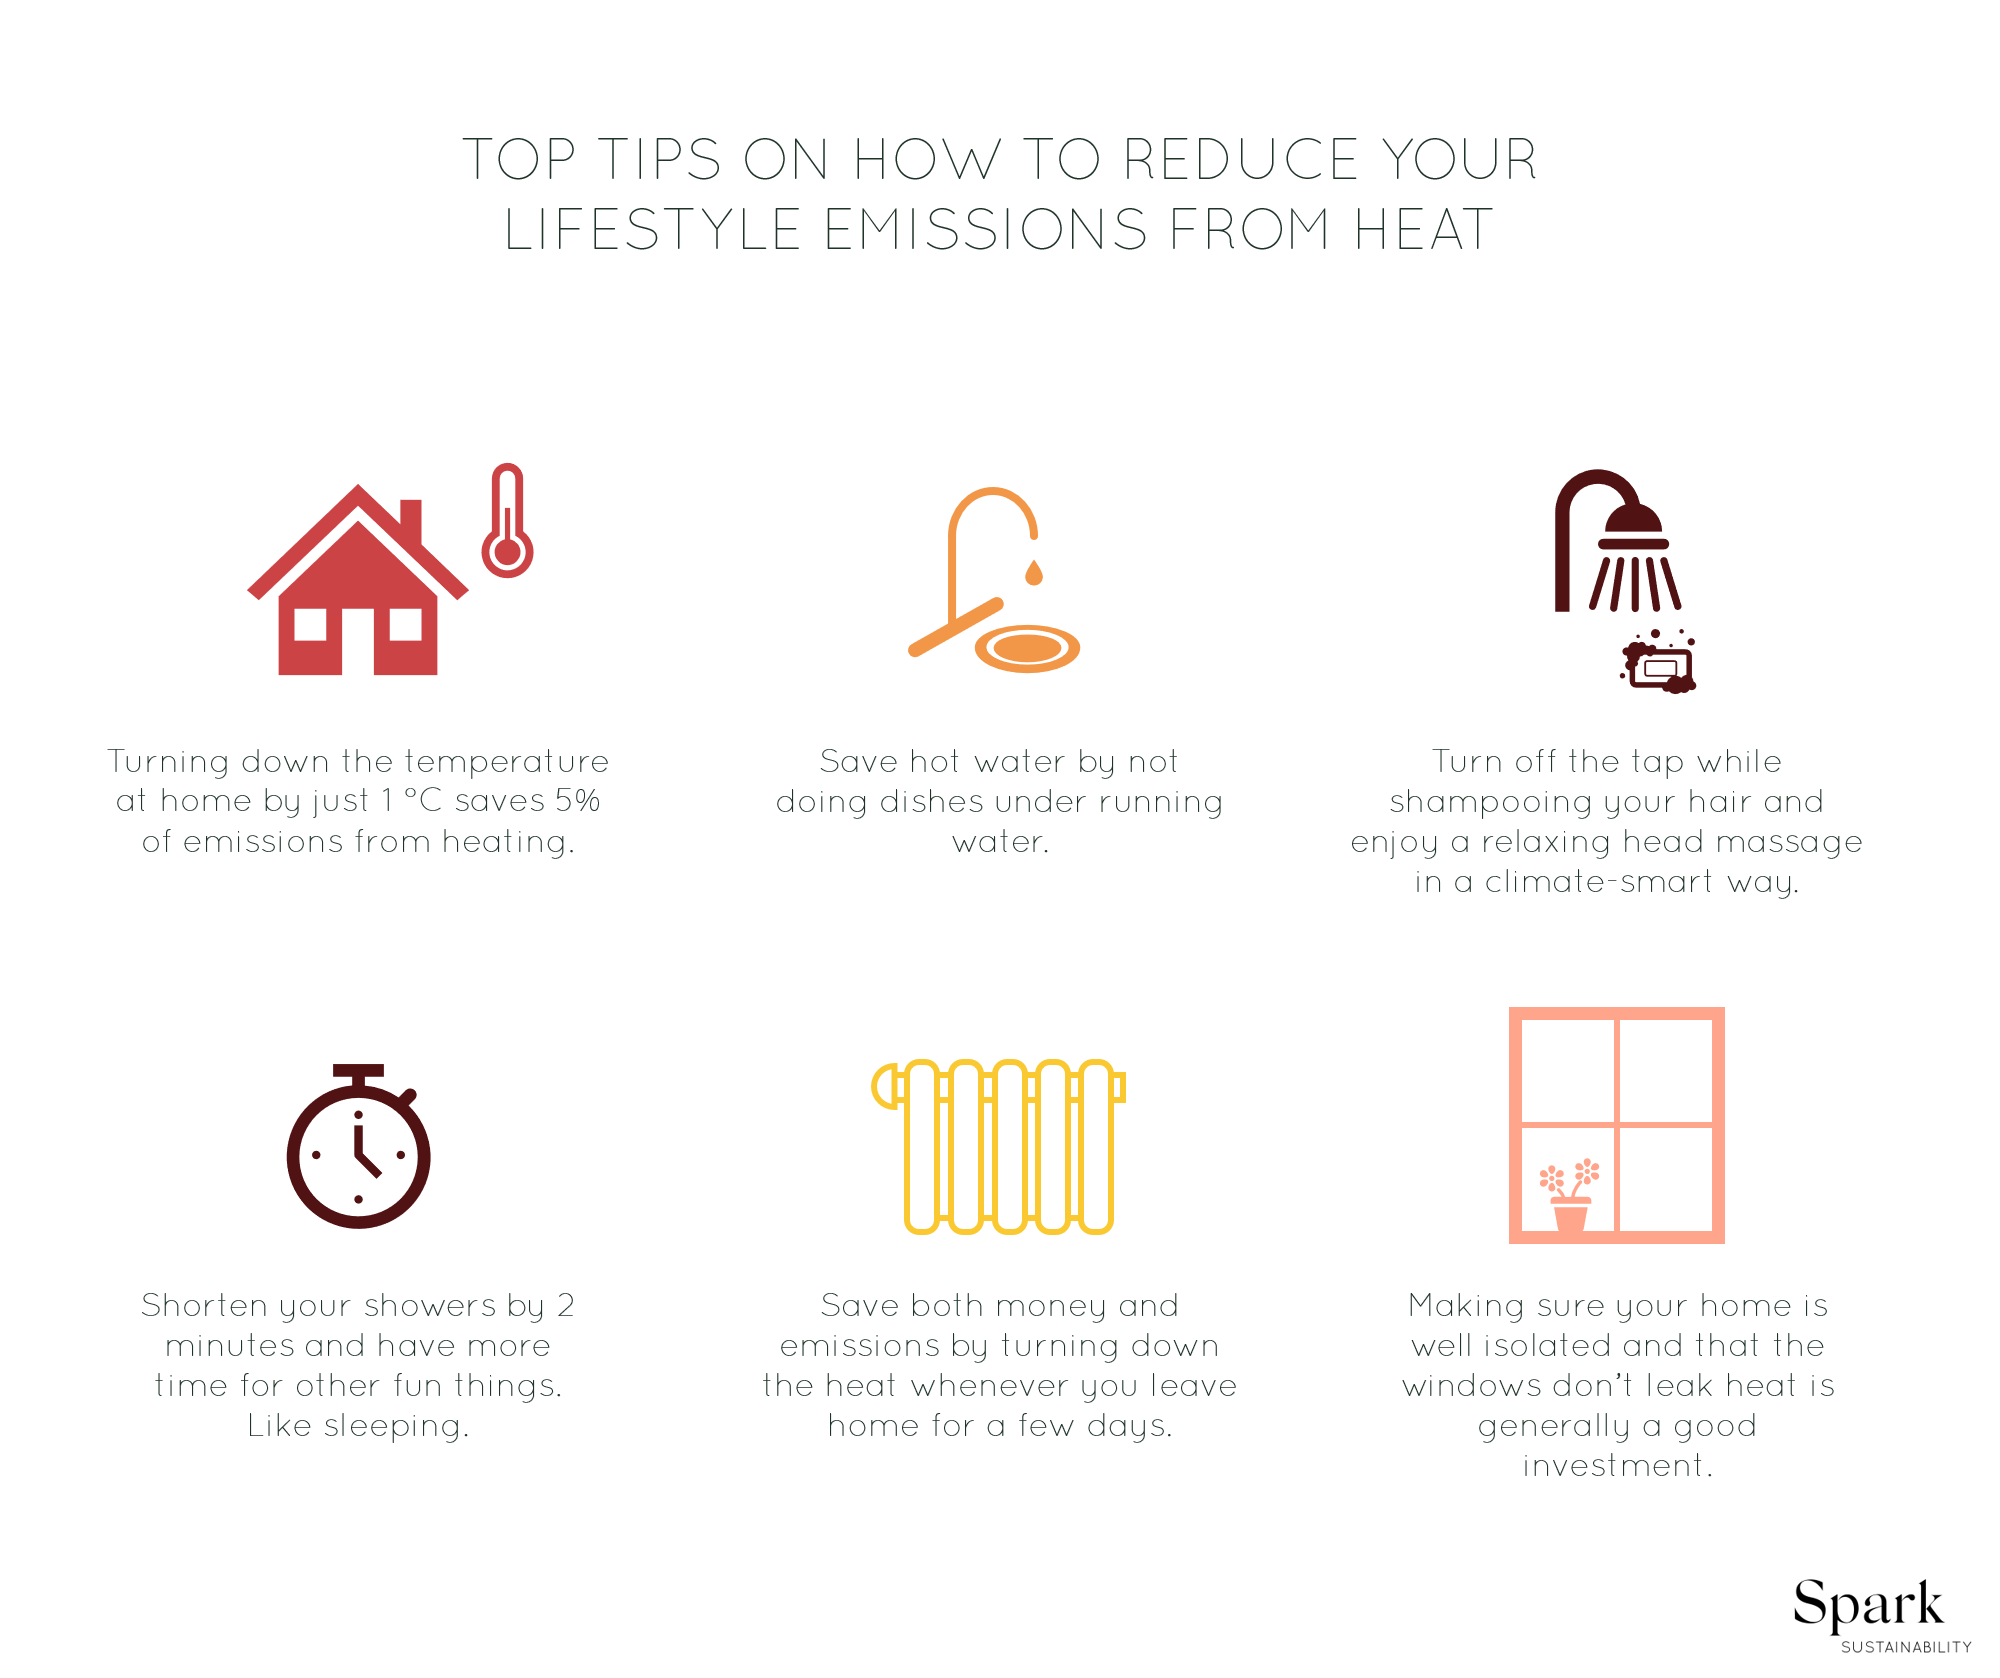 6 tips on how to reduce your lifestyle emissions from heat